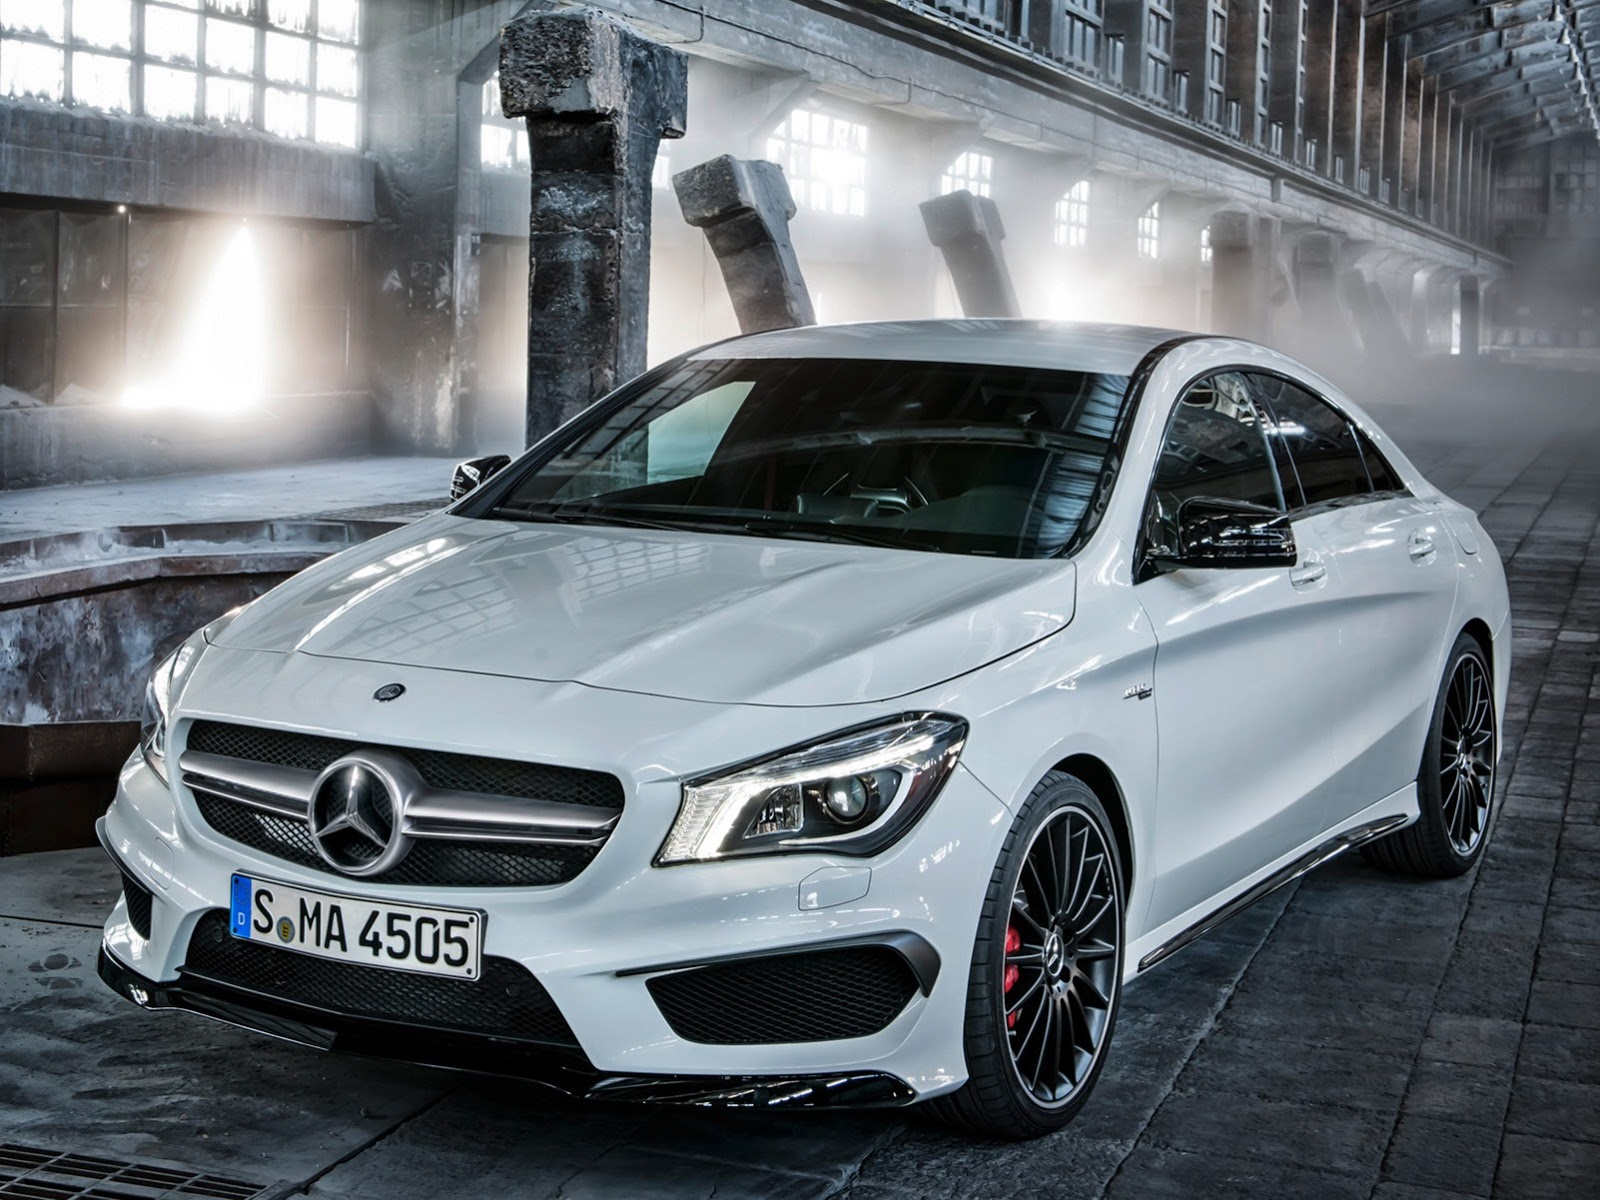 2014 mercedes cla 45 amg first photos leaked autoevolution. Black Bedroom Furniture Sets. Home Design Ideas